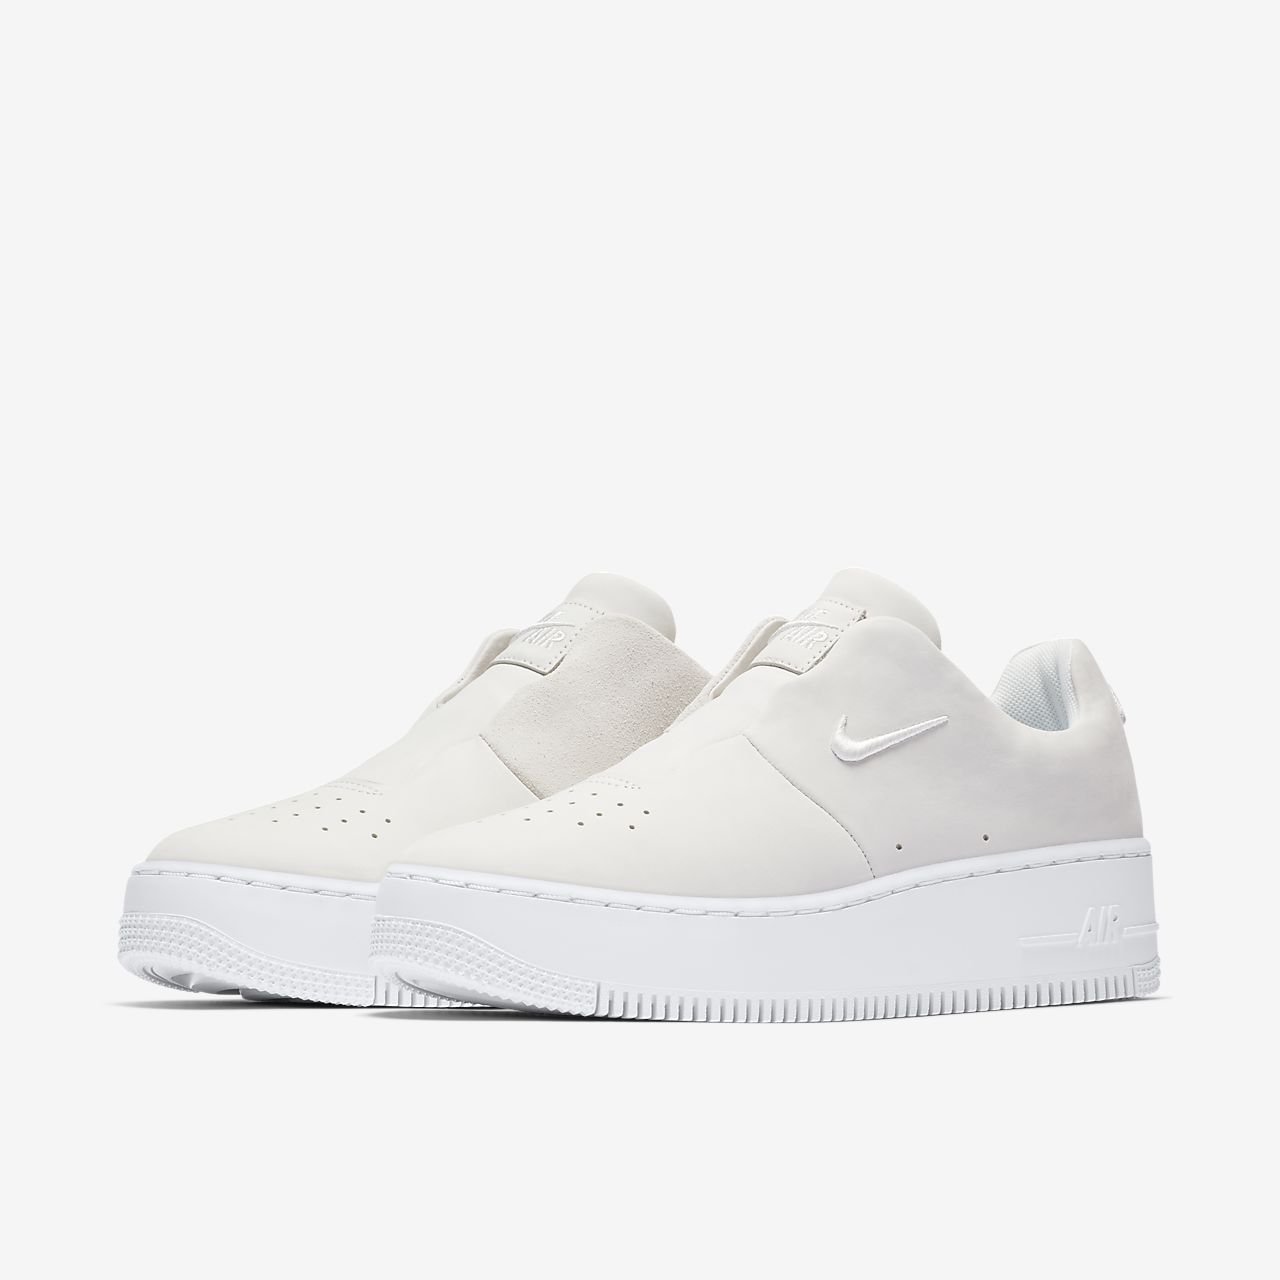 Discount Brand New Unisex Cheap Online Nike AF1 Sage sneakers New Arrival Sale Online wqm14qC6